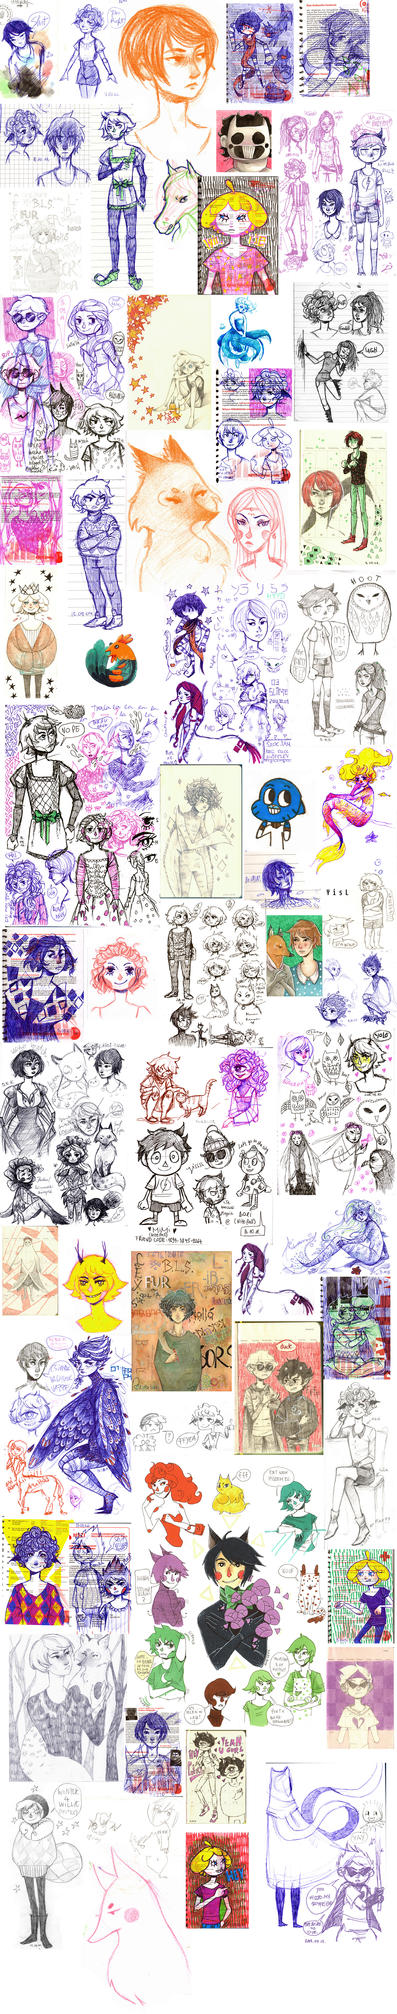 Sketchdump8-10 by maxyvert